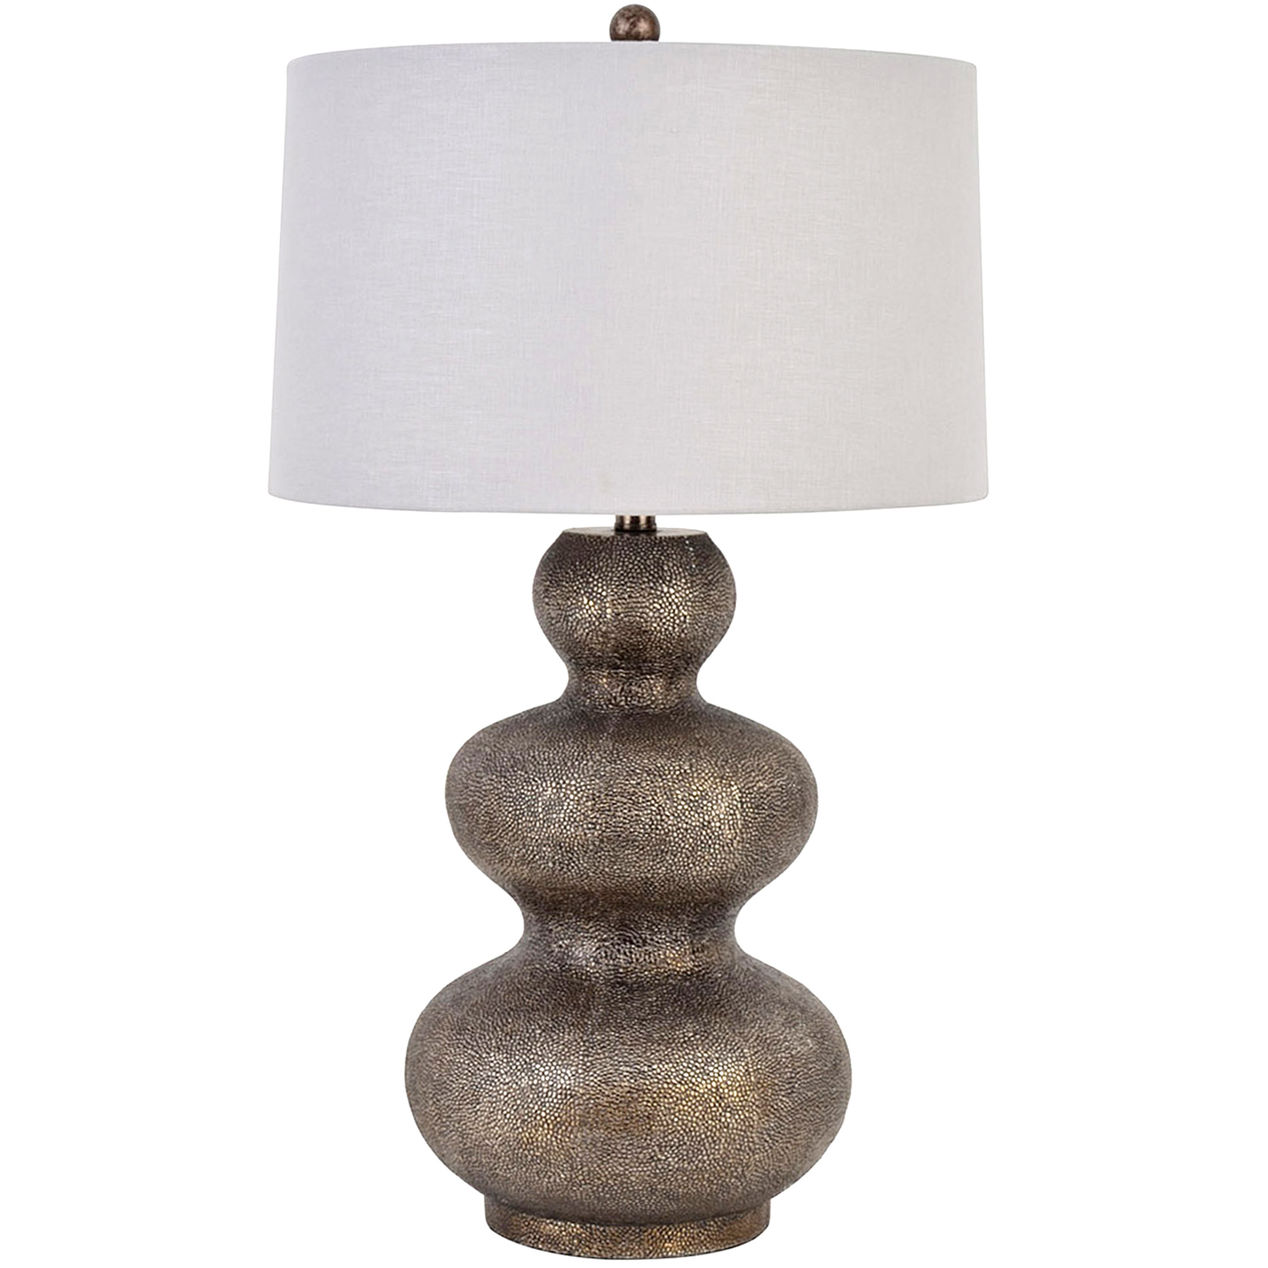 tier bronze ball table lamp shade sold separately home battery operated accent lamps zoom decorative nautical lanterns martel off white round coffee glass dinette set bunnings